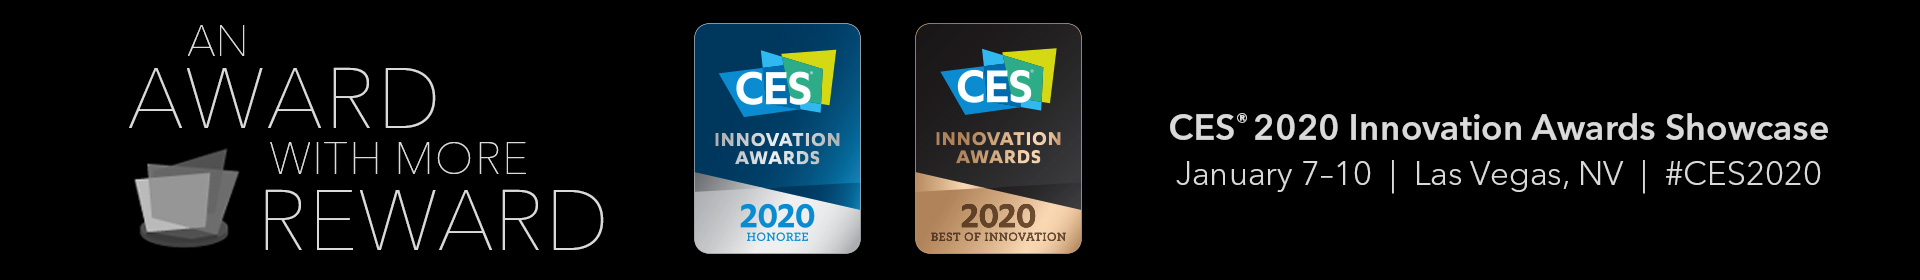 CES 2020 Innovation Awards Event Banner